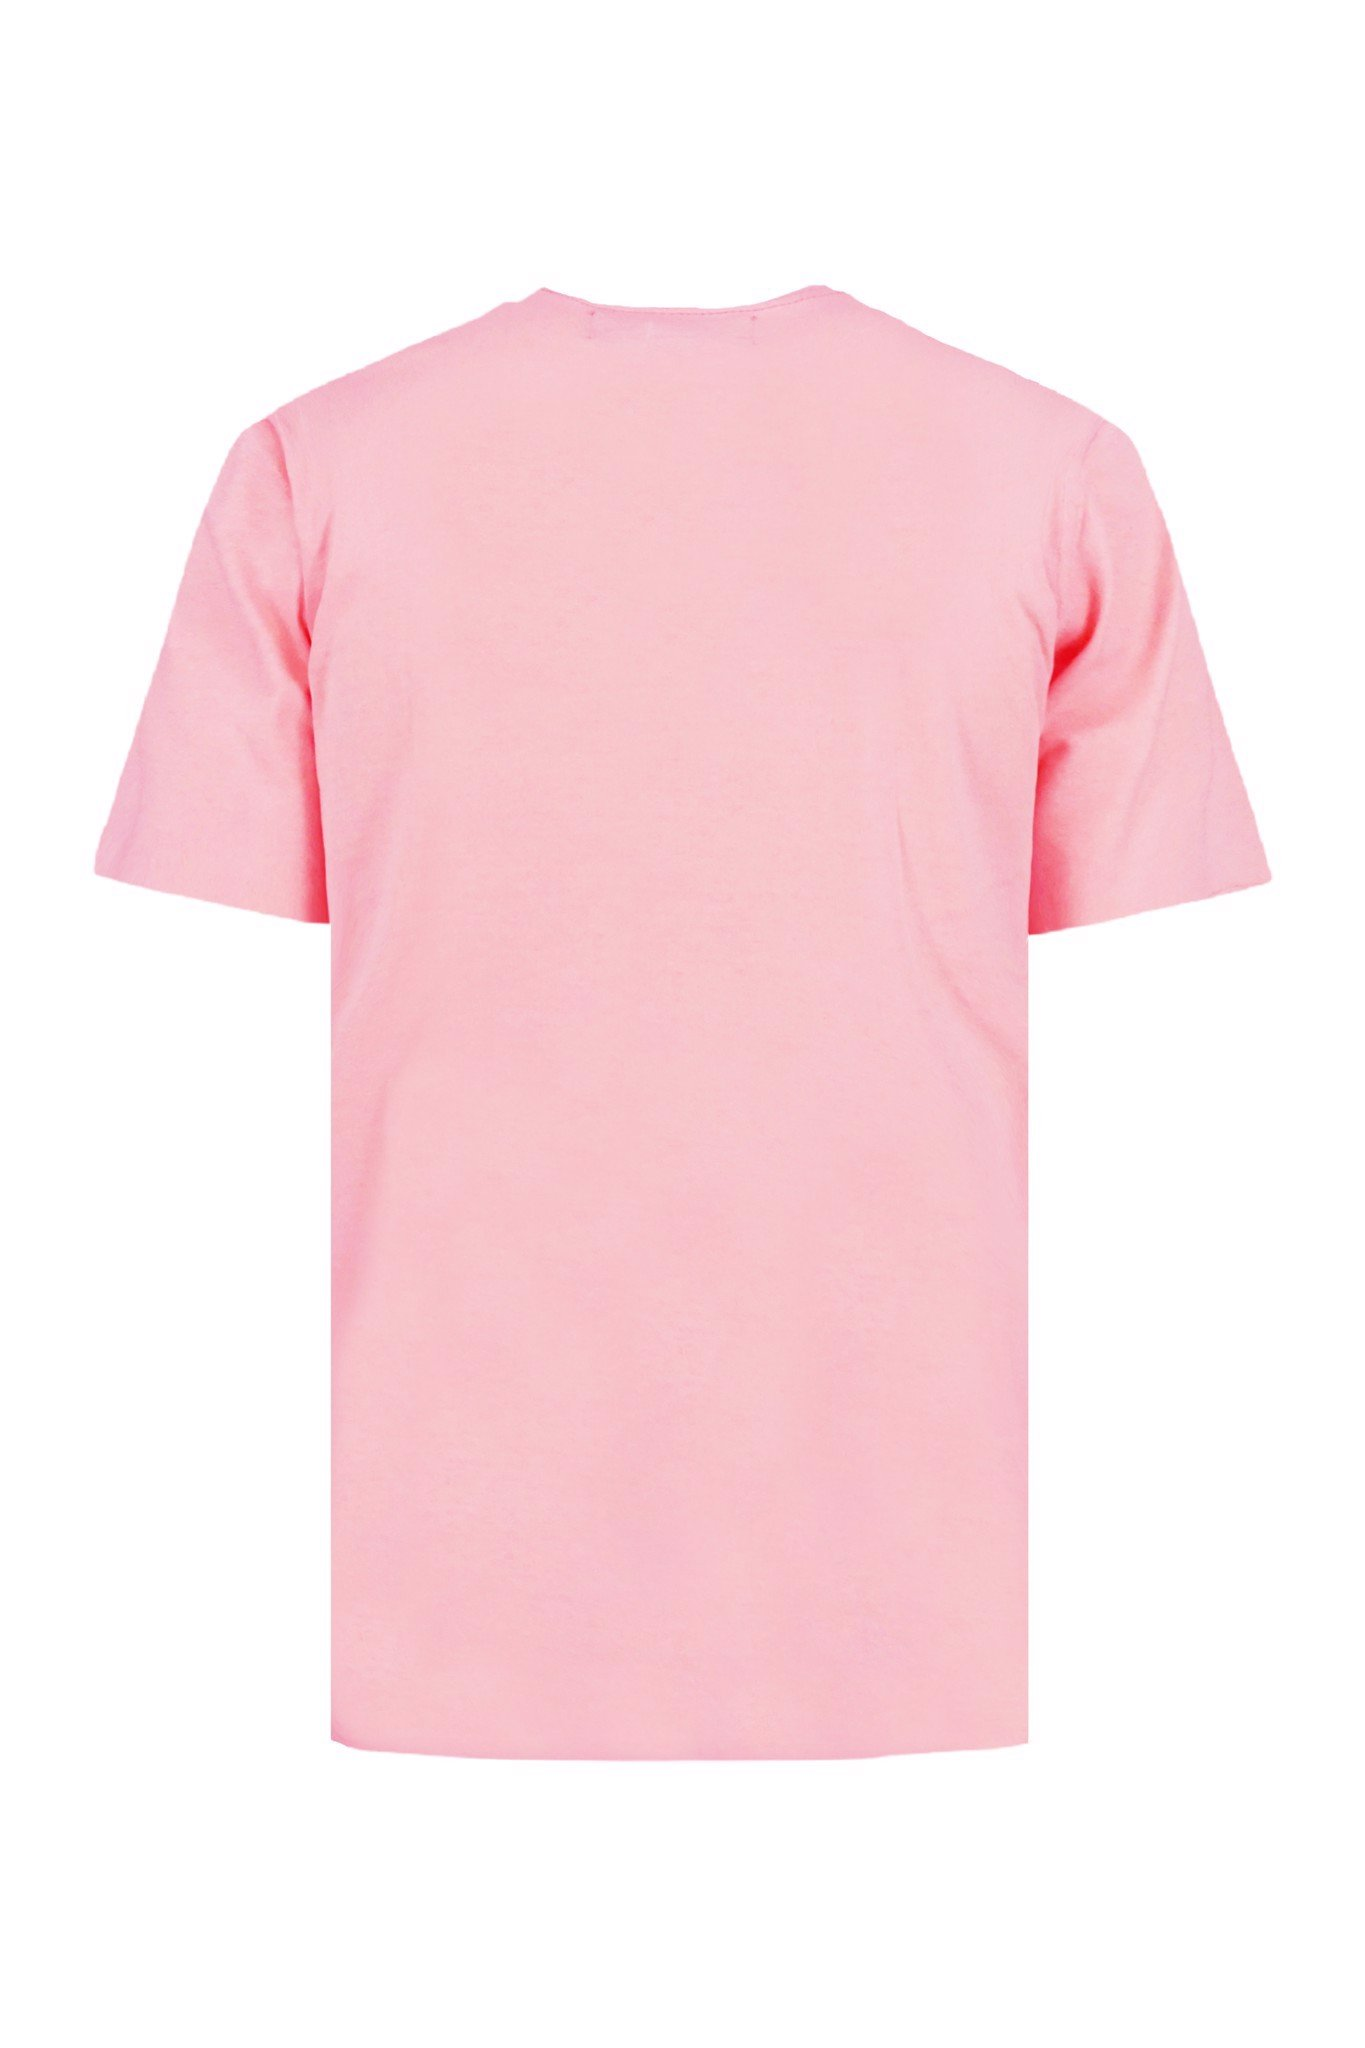 Sweet Pink Childs T-Shirt